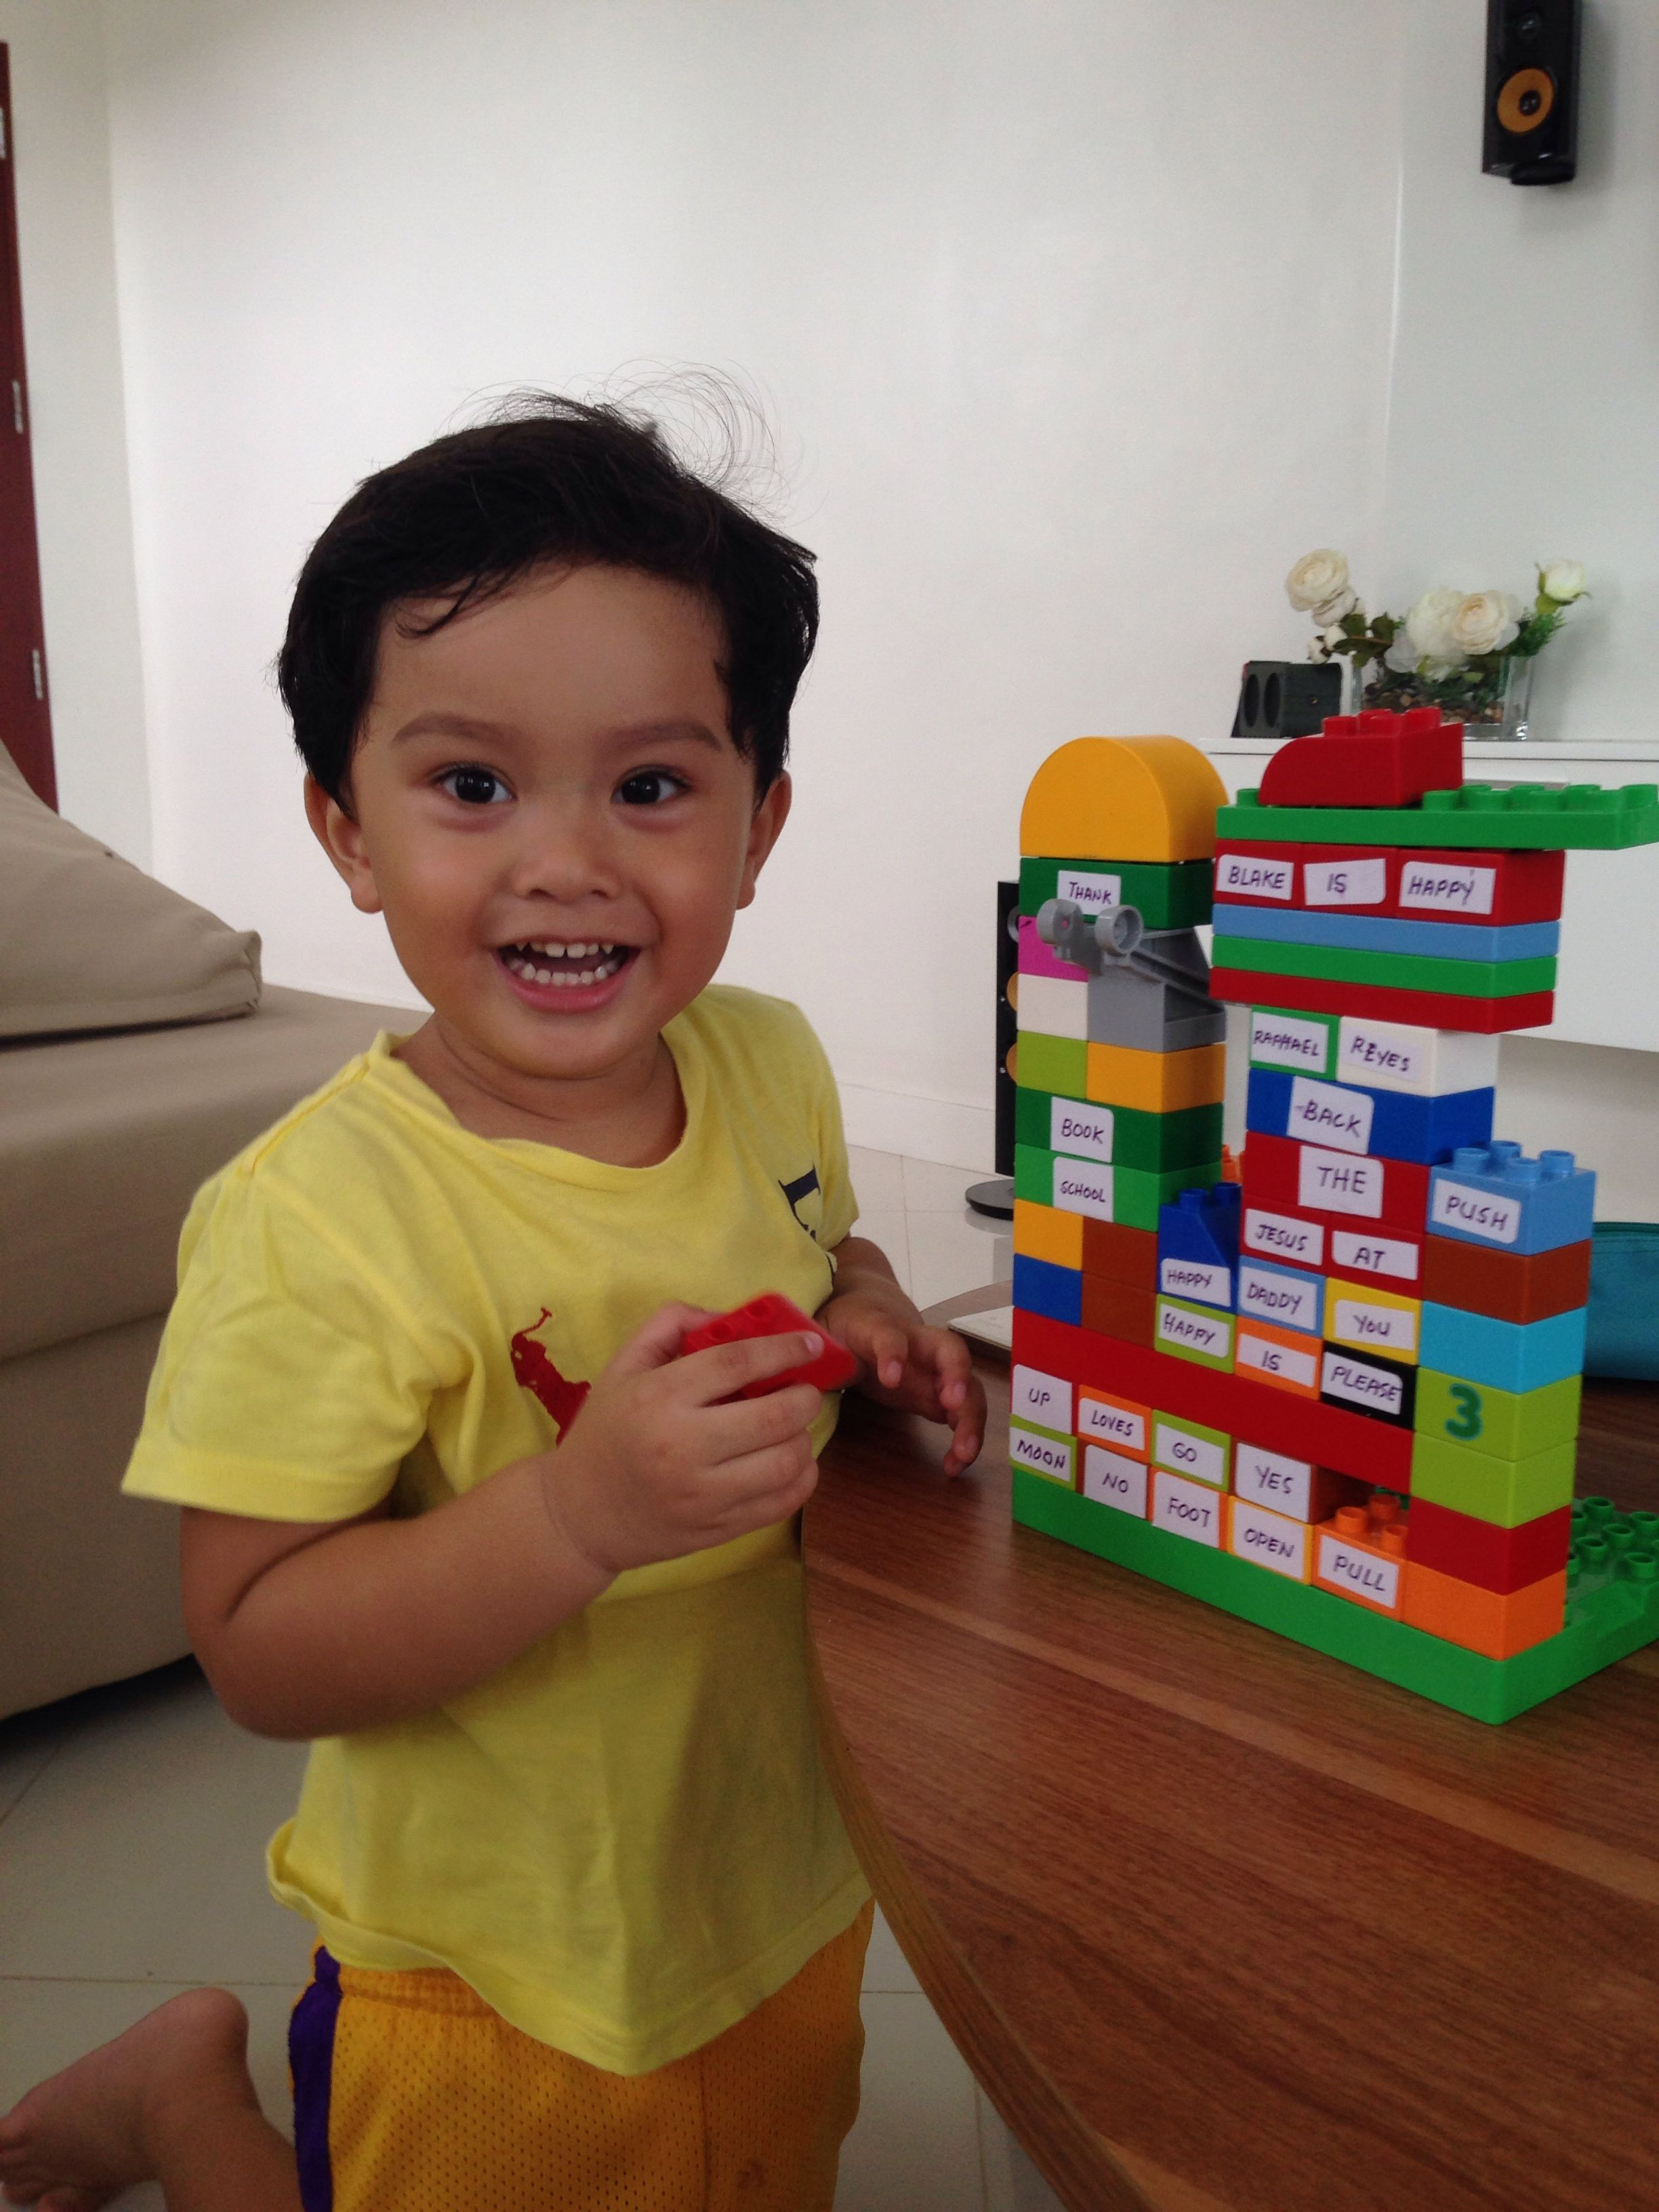 Enjoying his words and lego